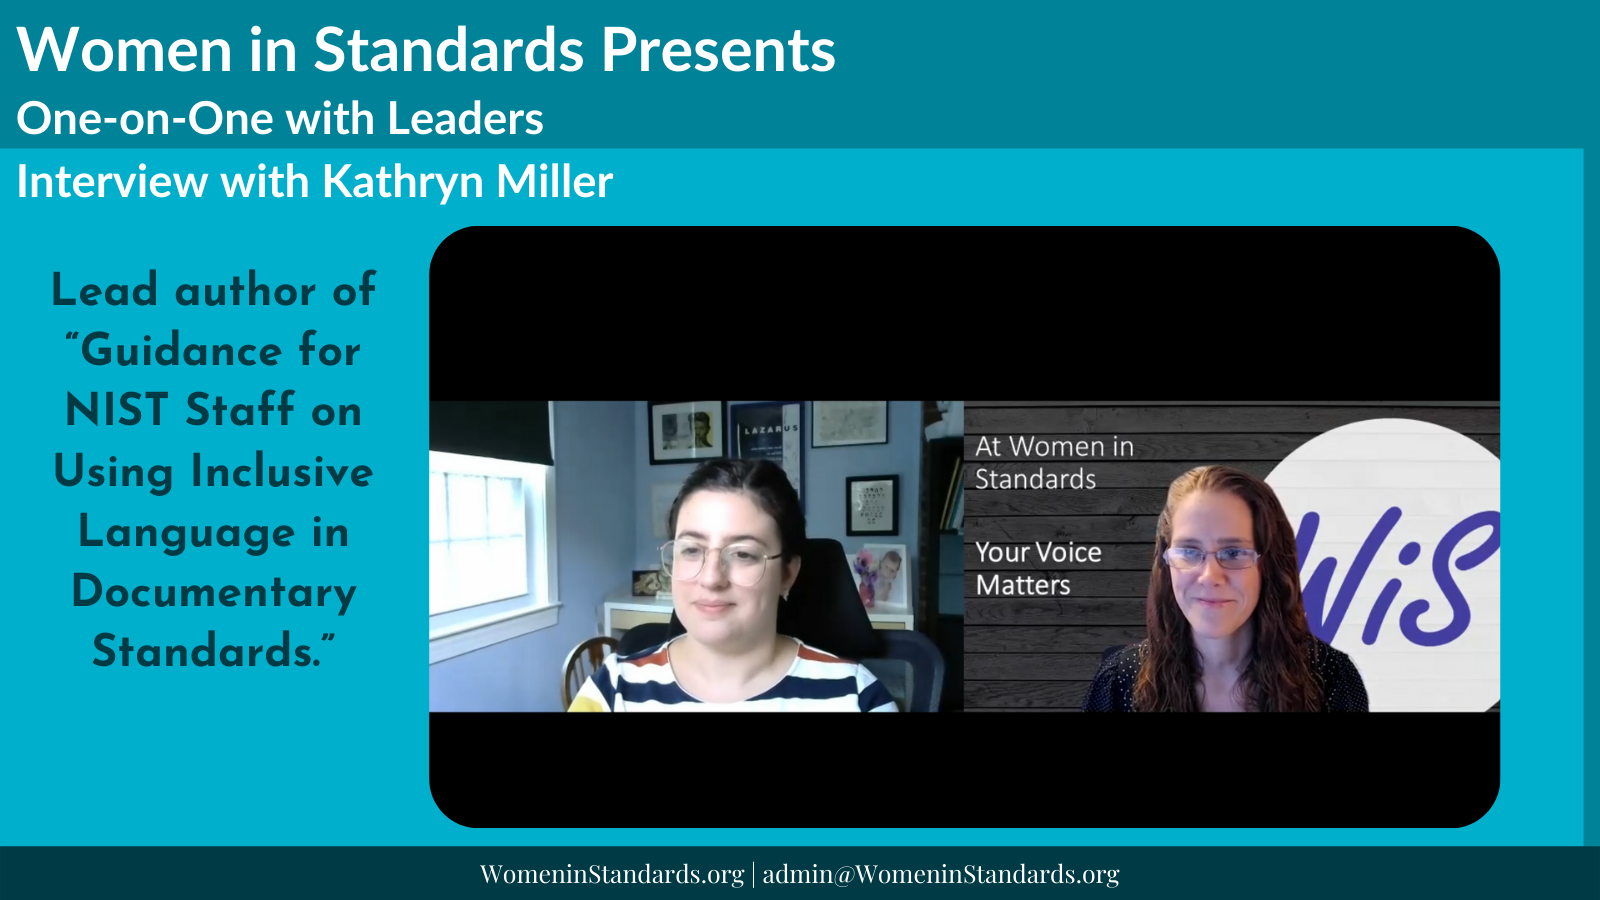 Interview with Kathryn Miller